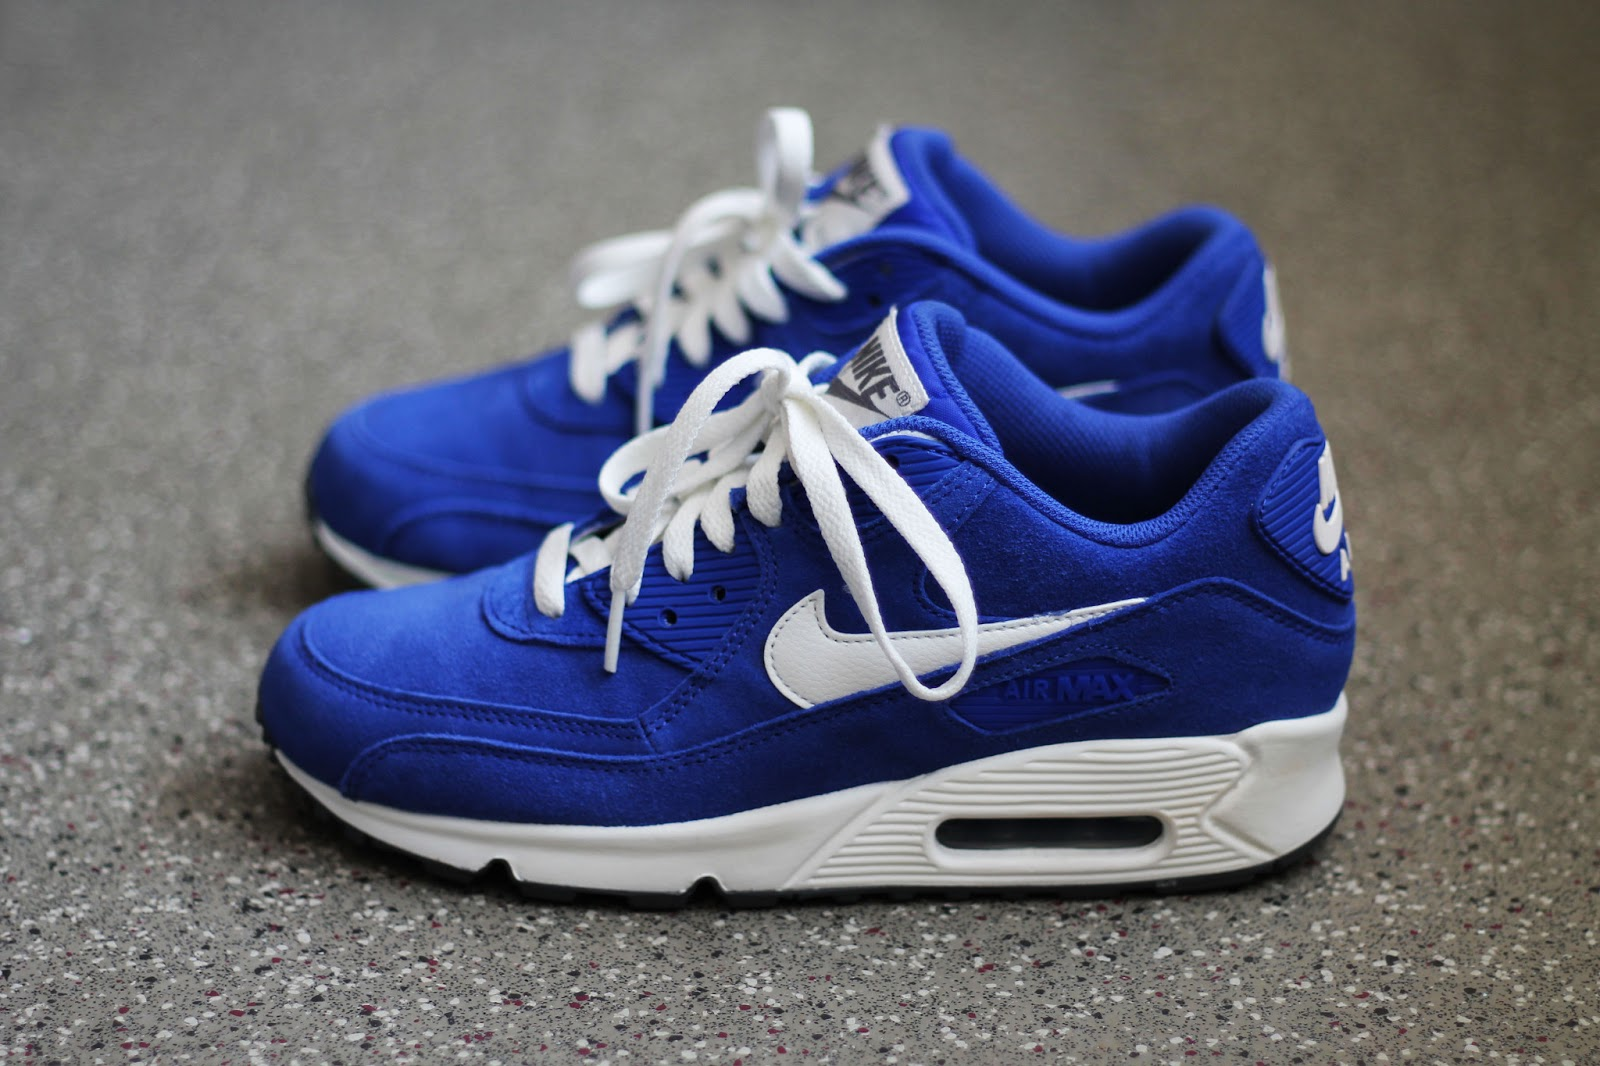 aa8dcaa53812 low price nike air max 90 essential blue suede 8757f 2b671  discount code  for air max 90 essential vs premium 9f331 fa594